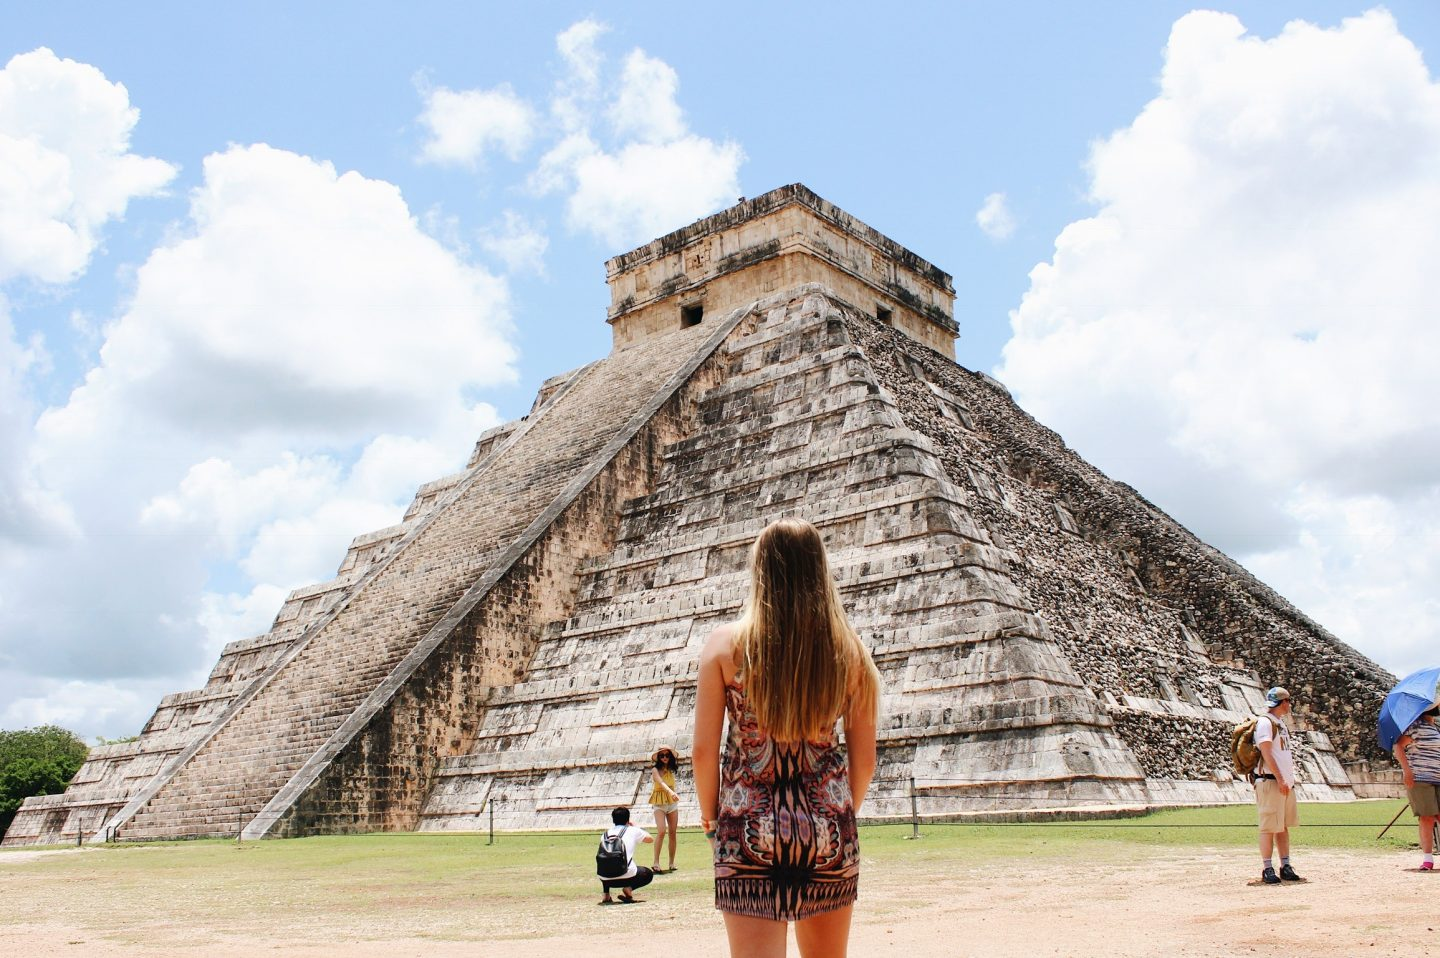 Standing in front of one of the 7 Wonders of the World in Mexico!